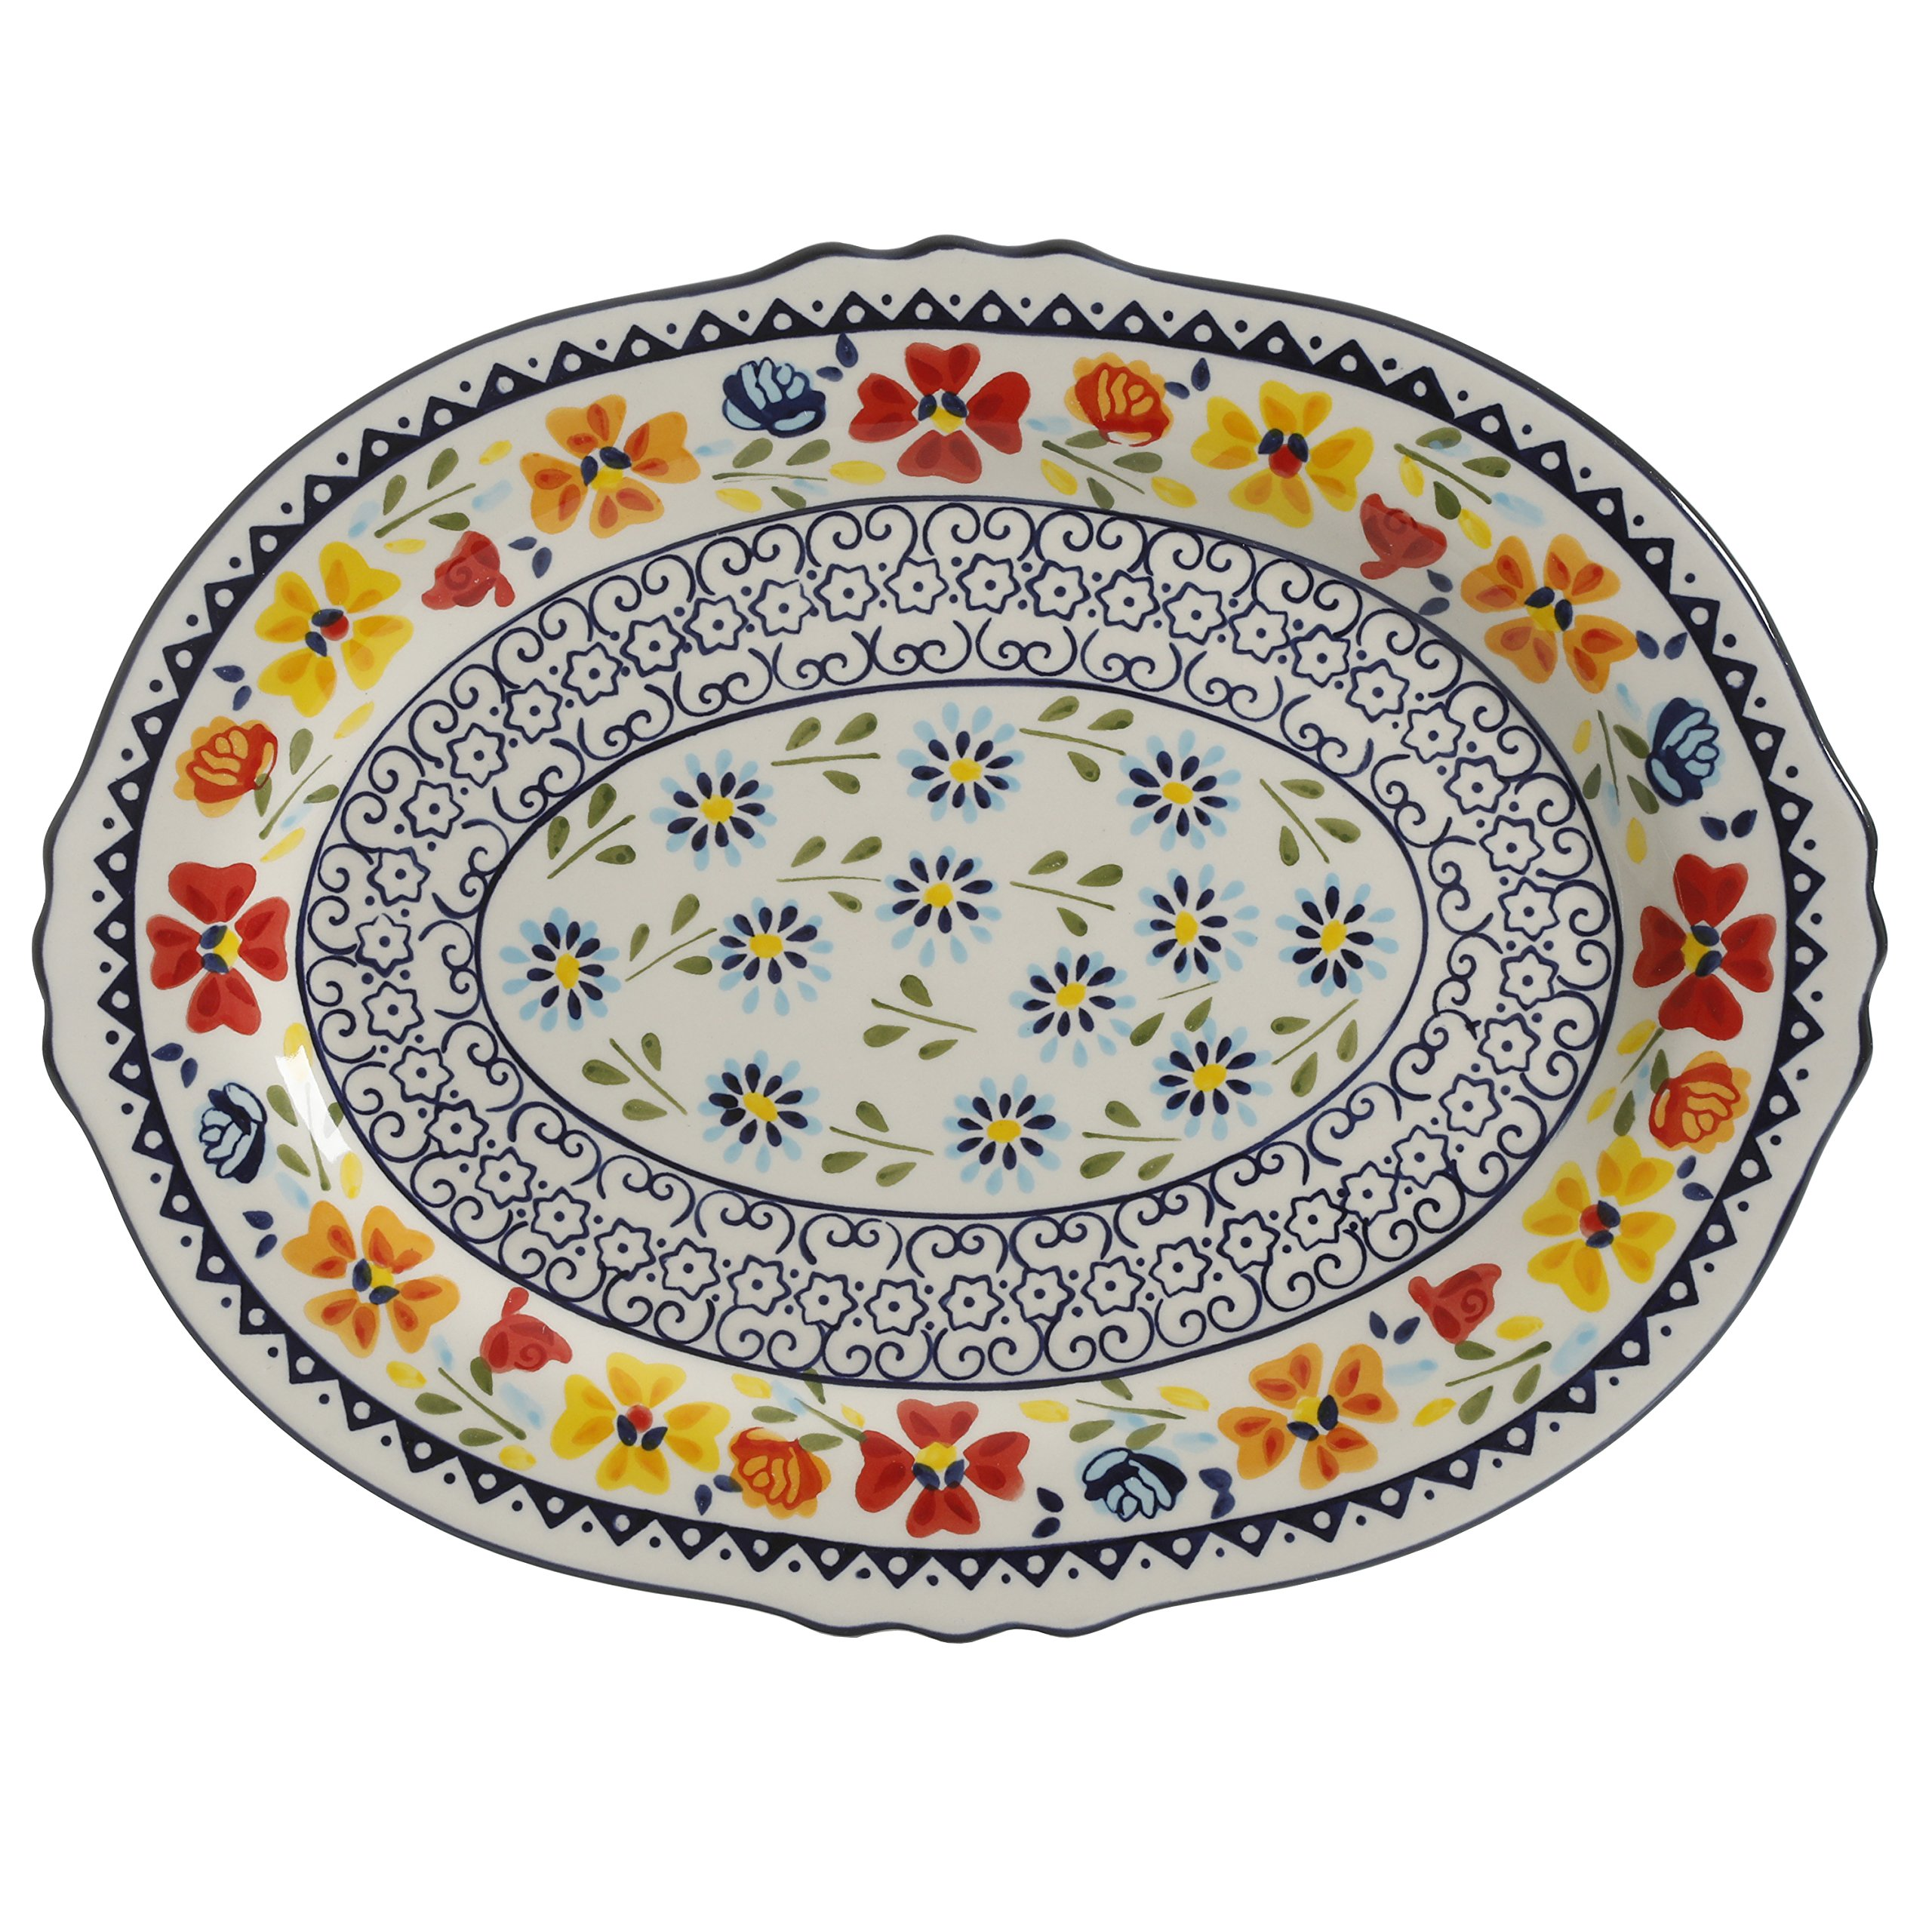 Gibson Elite 98760.01R Luxembourg Handpainted 14'' Serving Platter, Blue and Cream w/Floral Designs by Gibson